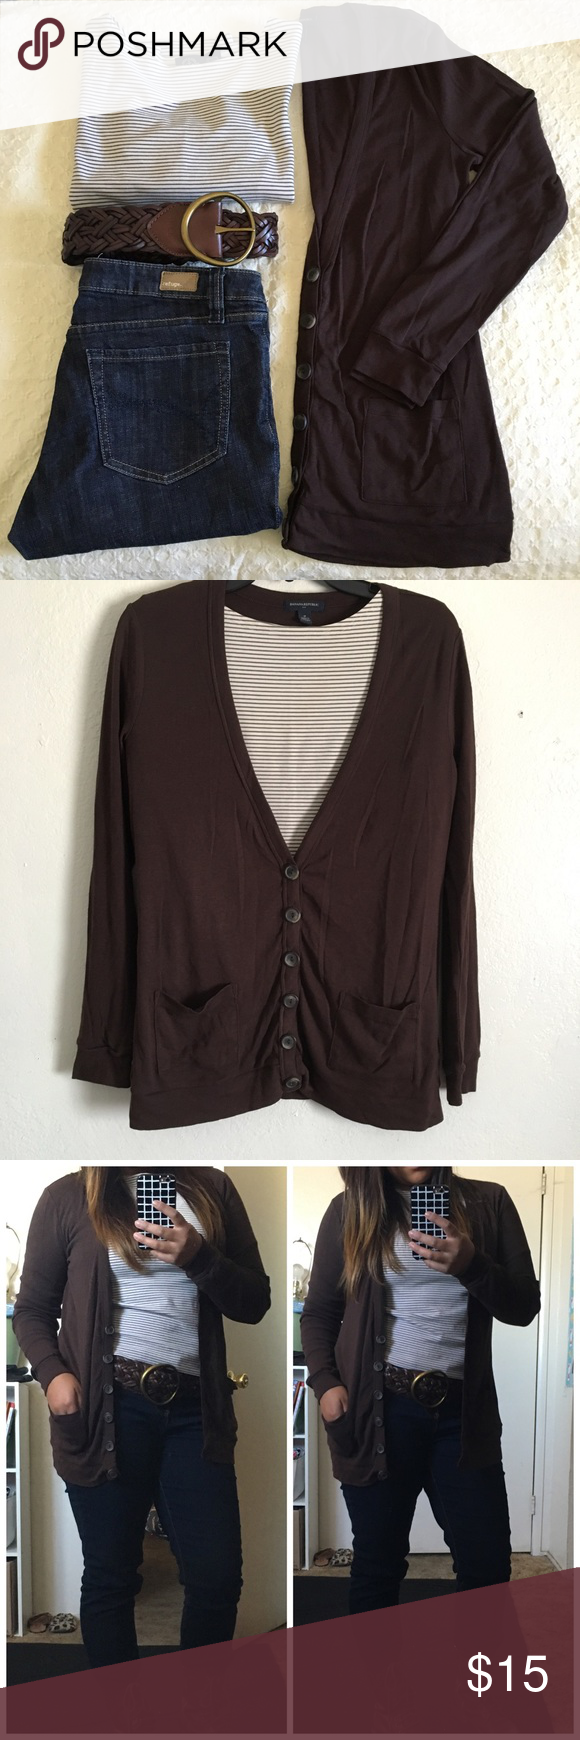 Dark brown cardigan | Dark brown, Banana republic and Dark